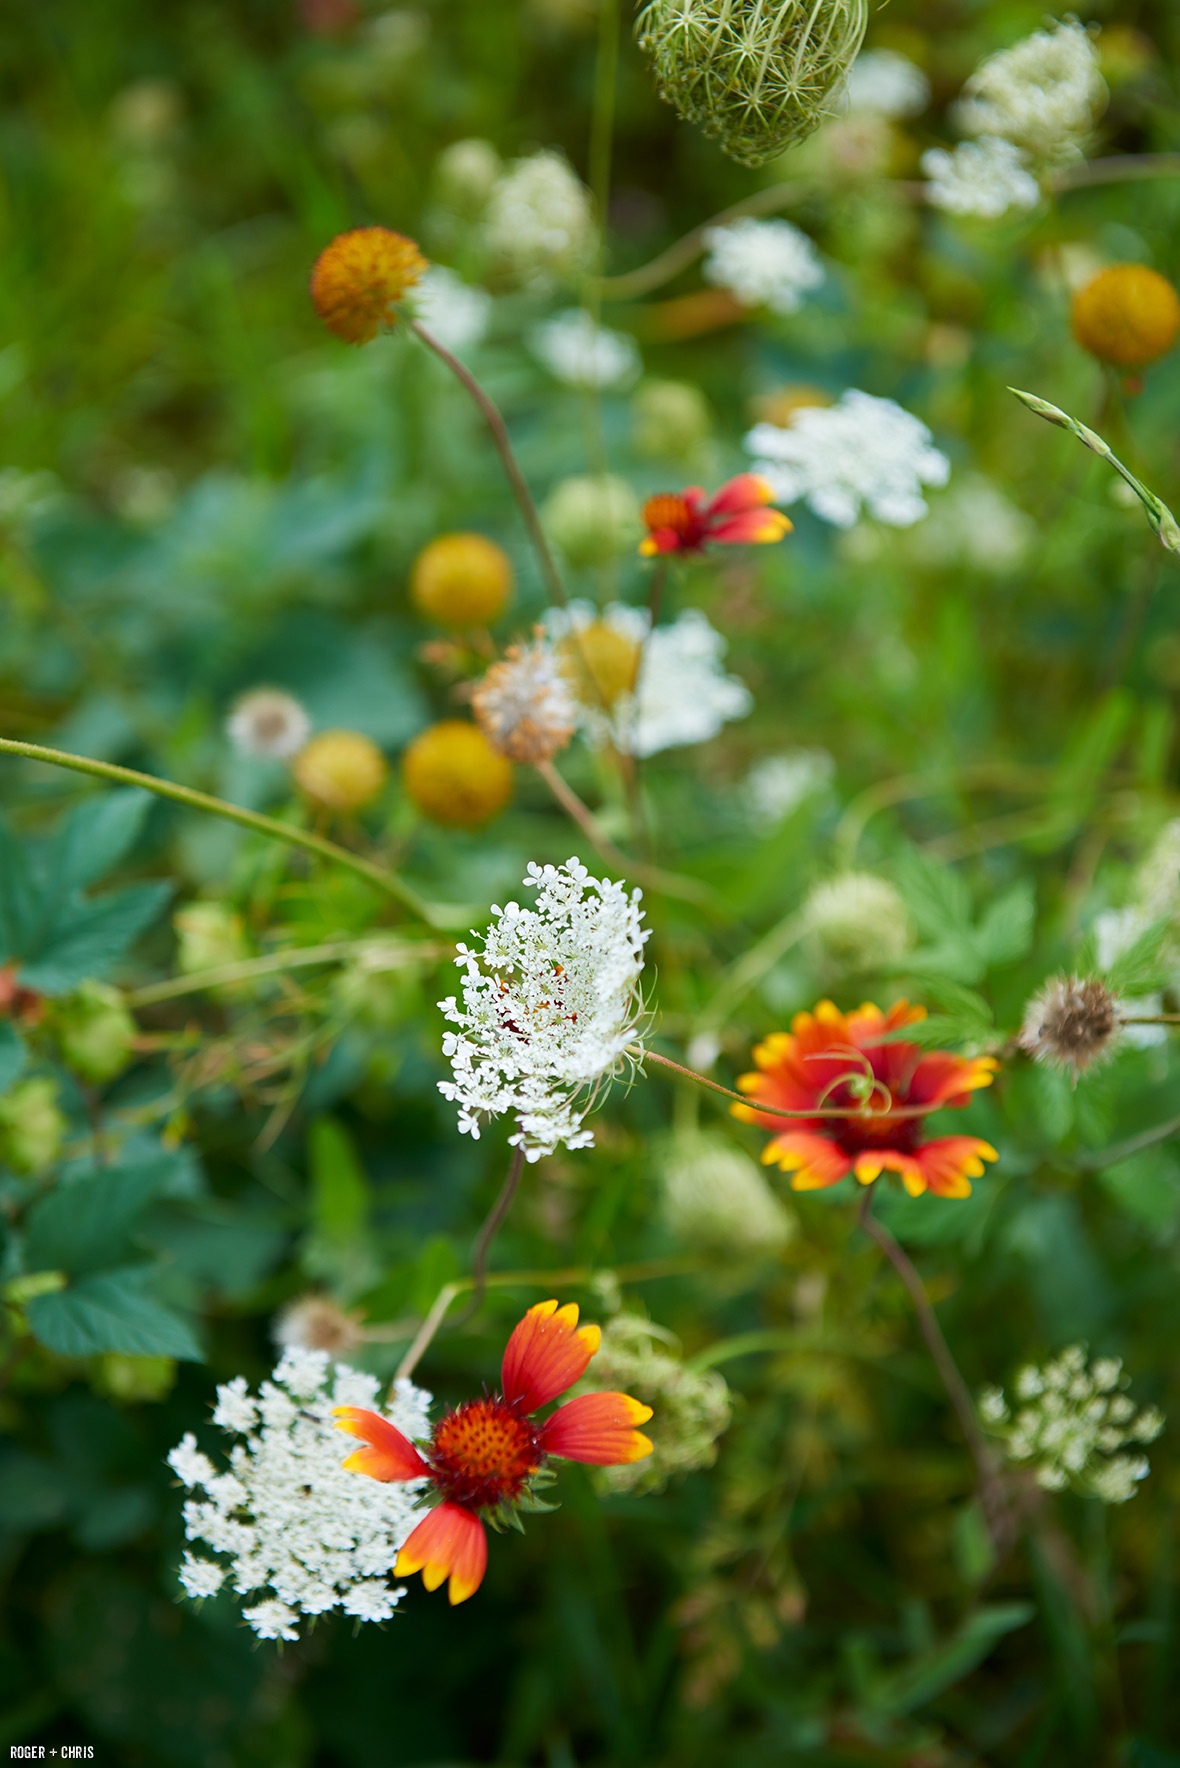 Wildflowers in the garden. Photo by Alec Hemer.